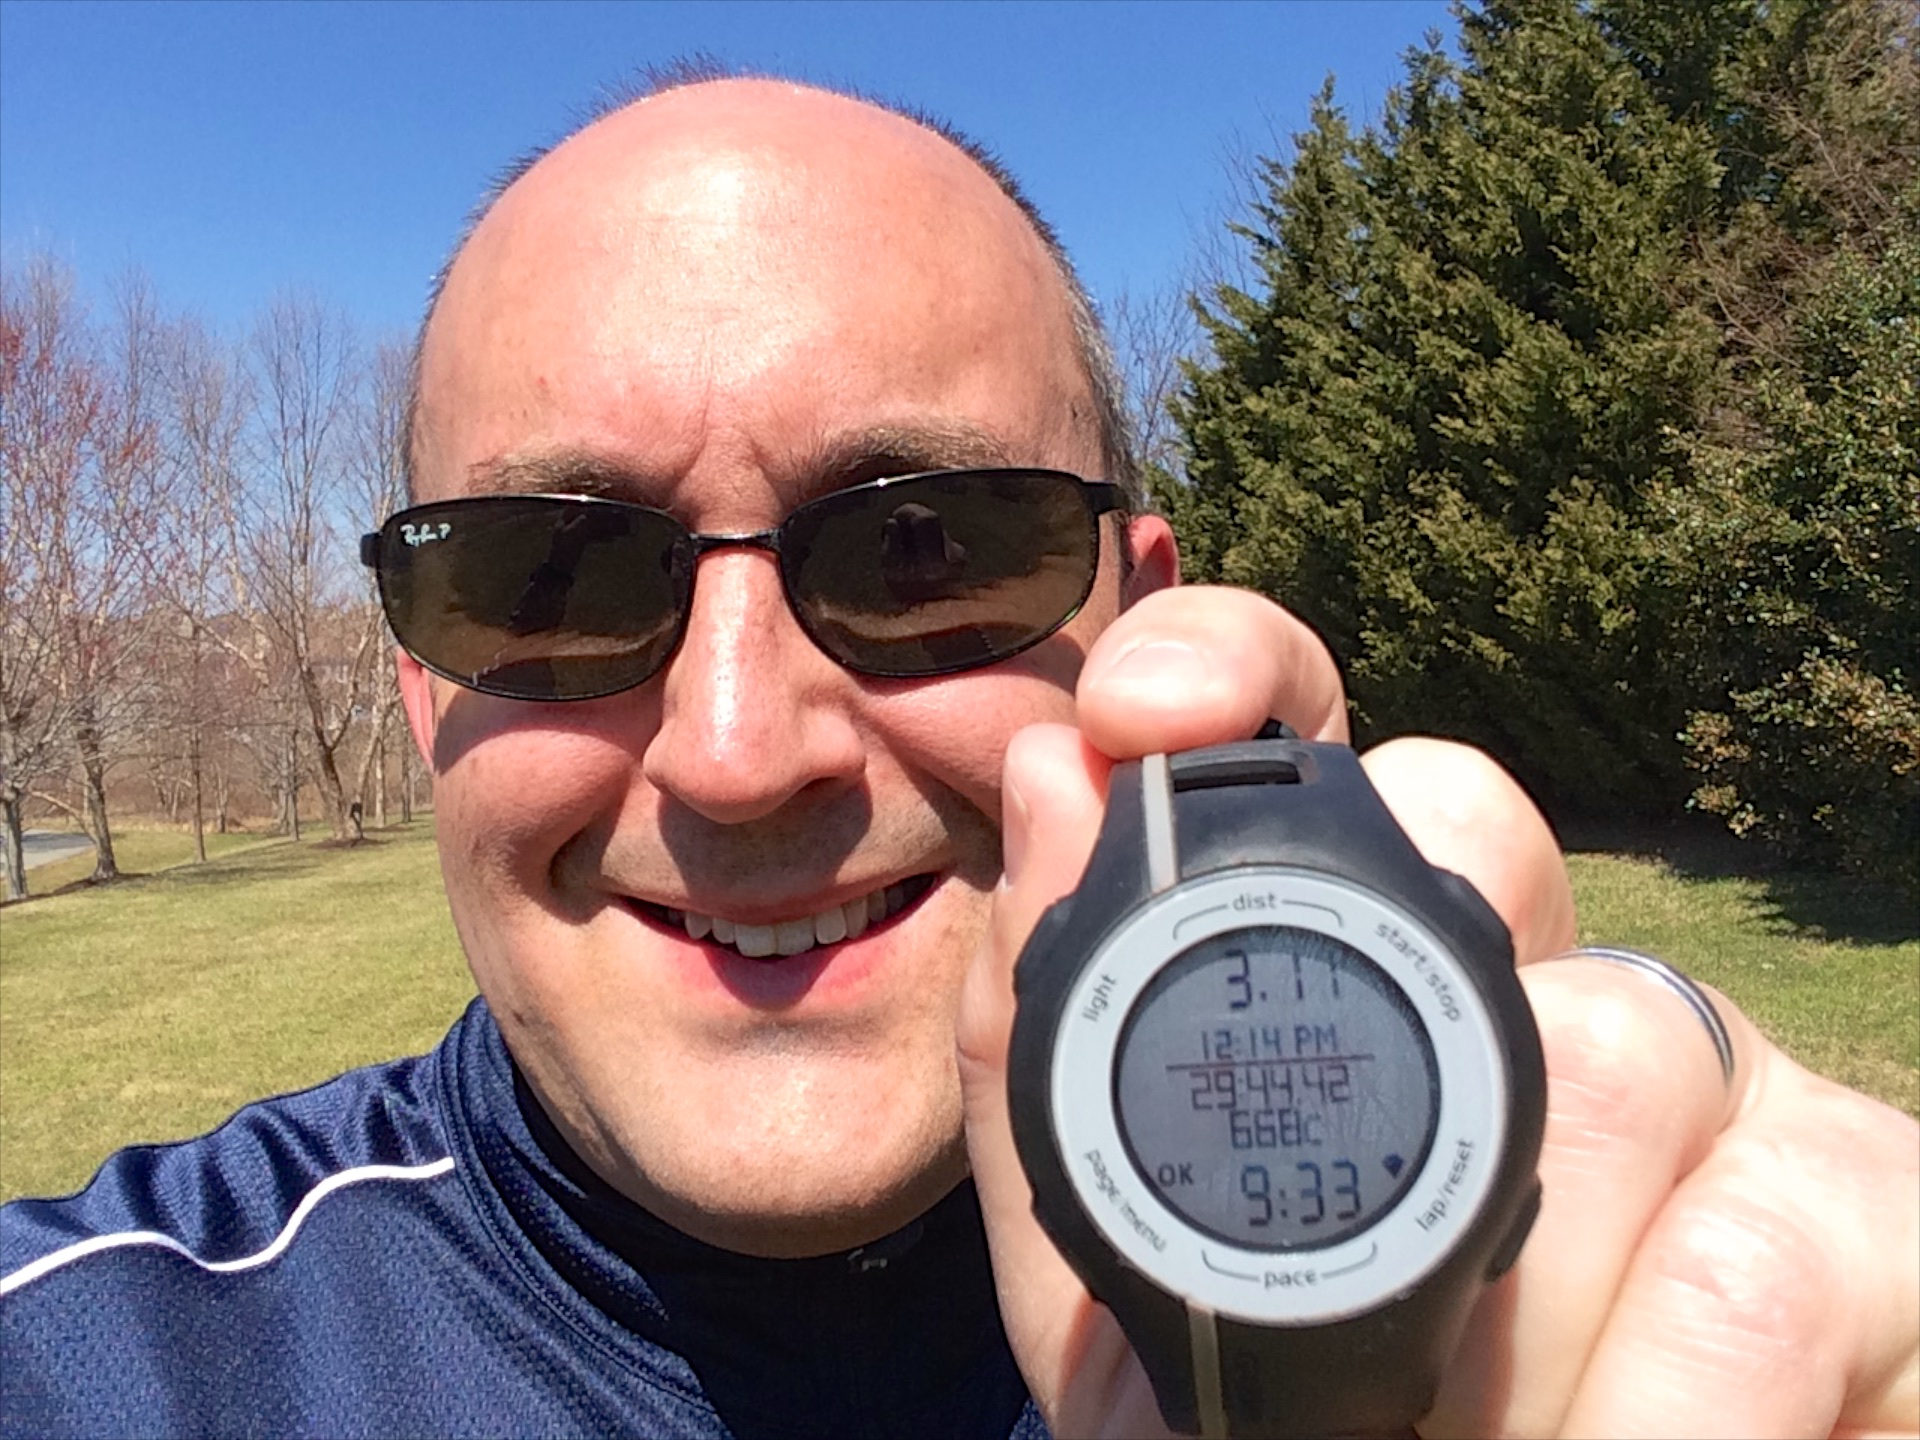 Becoming a running addict, and my first sub 30-minute 5K in April of 2015 after two years of trying fighting terrible peripheral neuropathy and muscle fatigue issues from chemo!